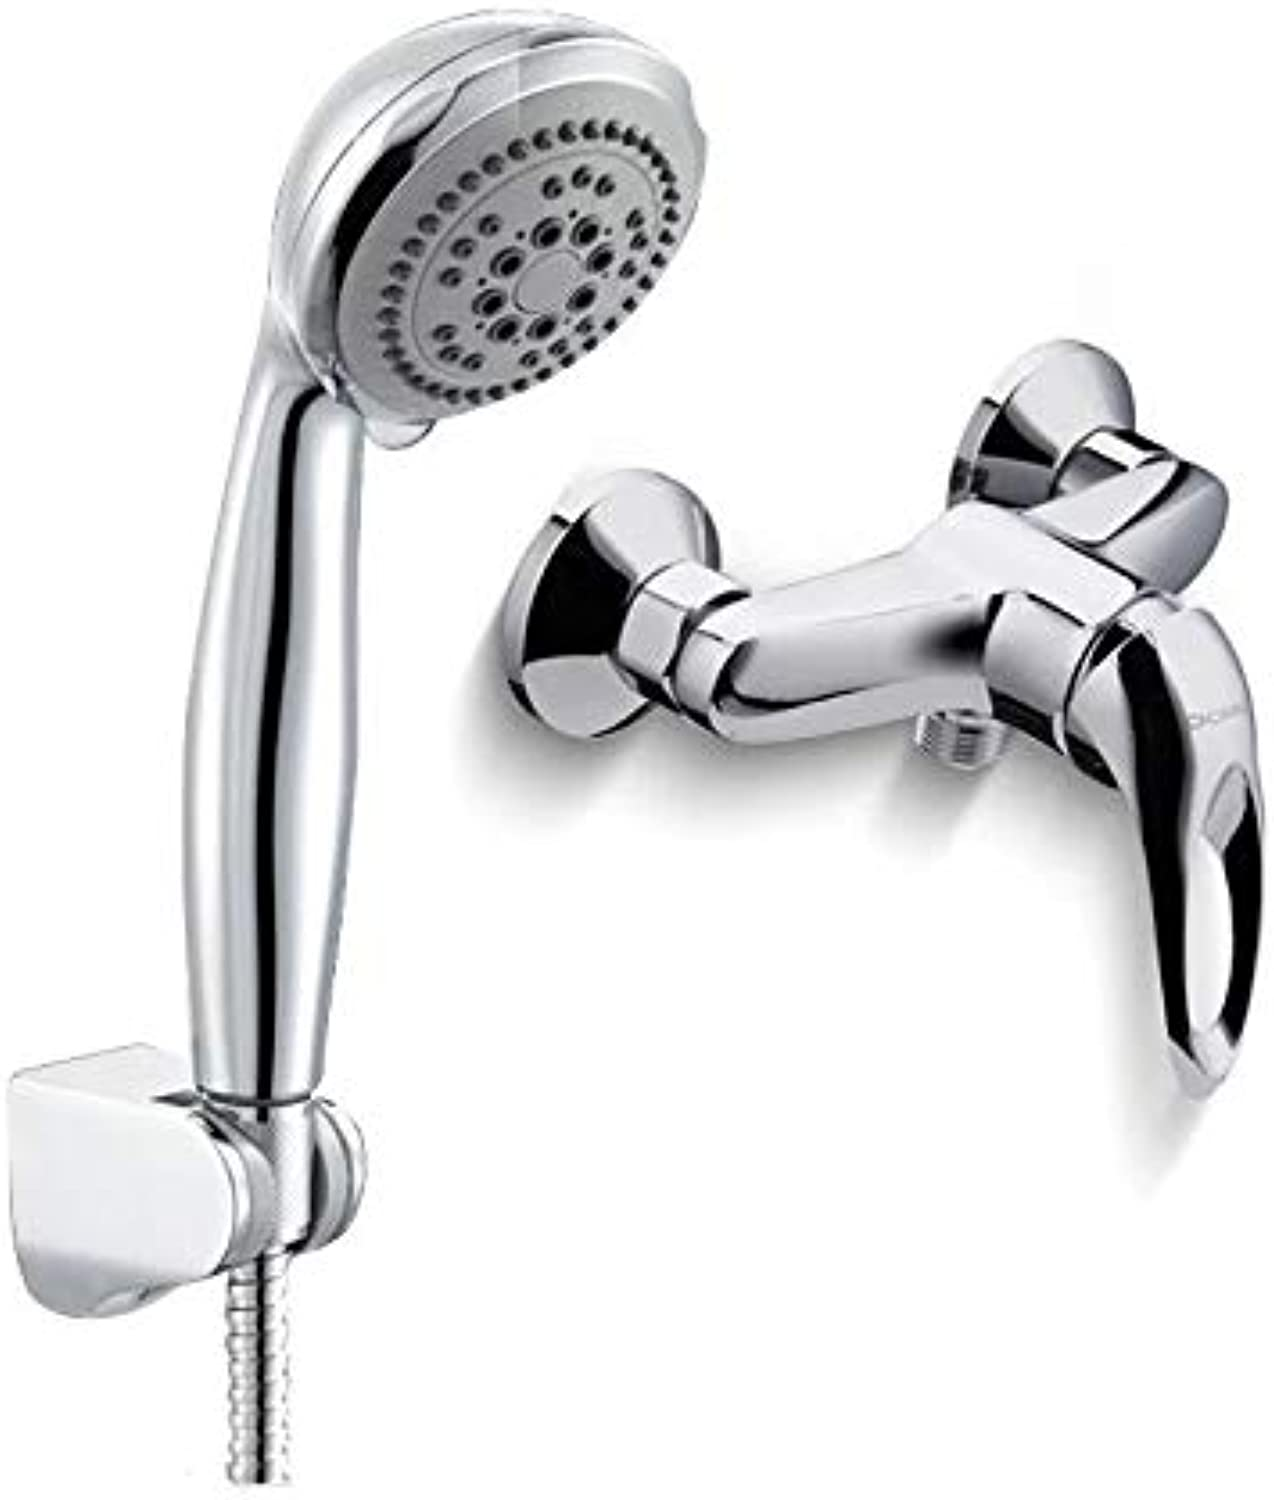 redOOY Showers Shower Mixing Valve Shower Simple Shower Mixing Valve Faucet Simple Handheld Nozzle